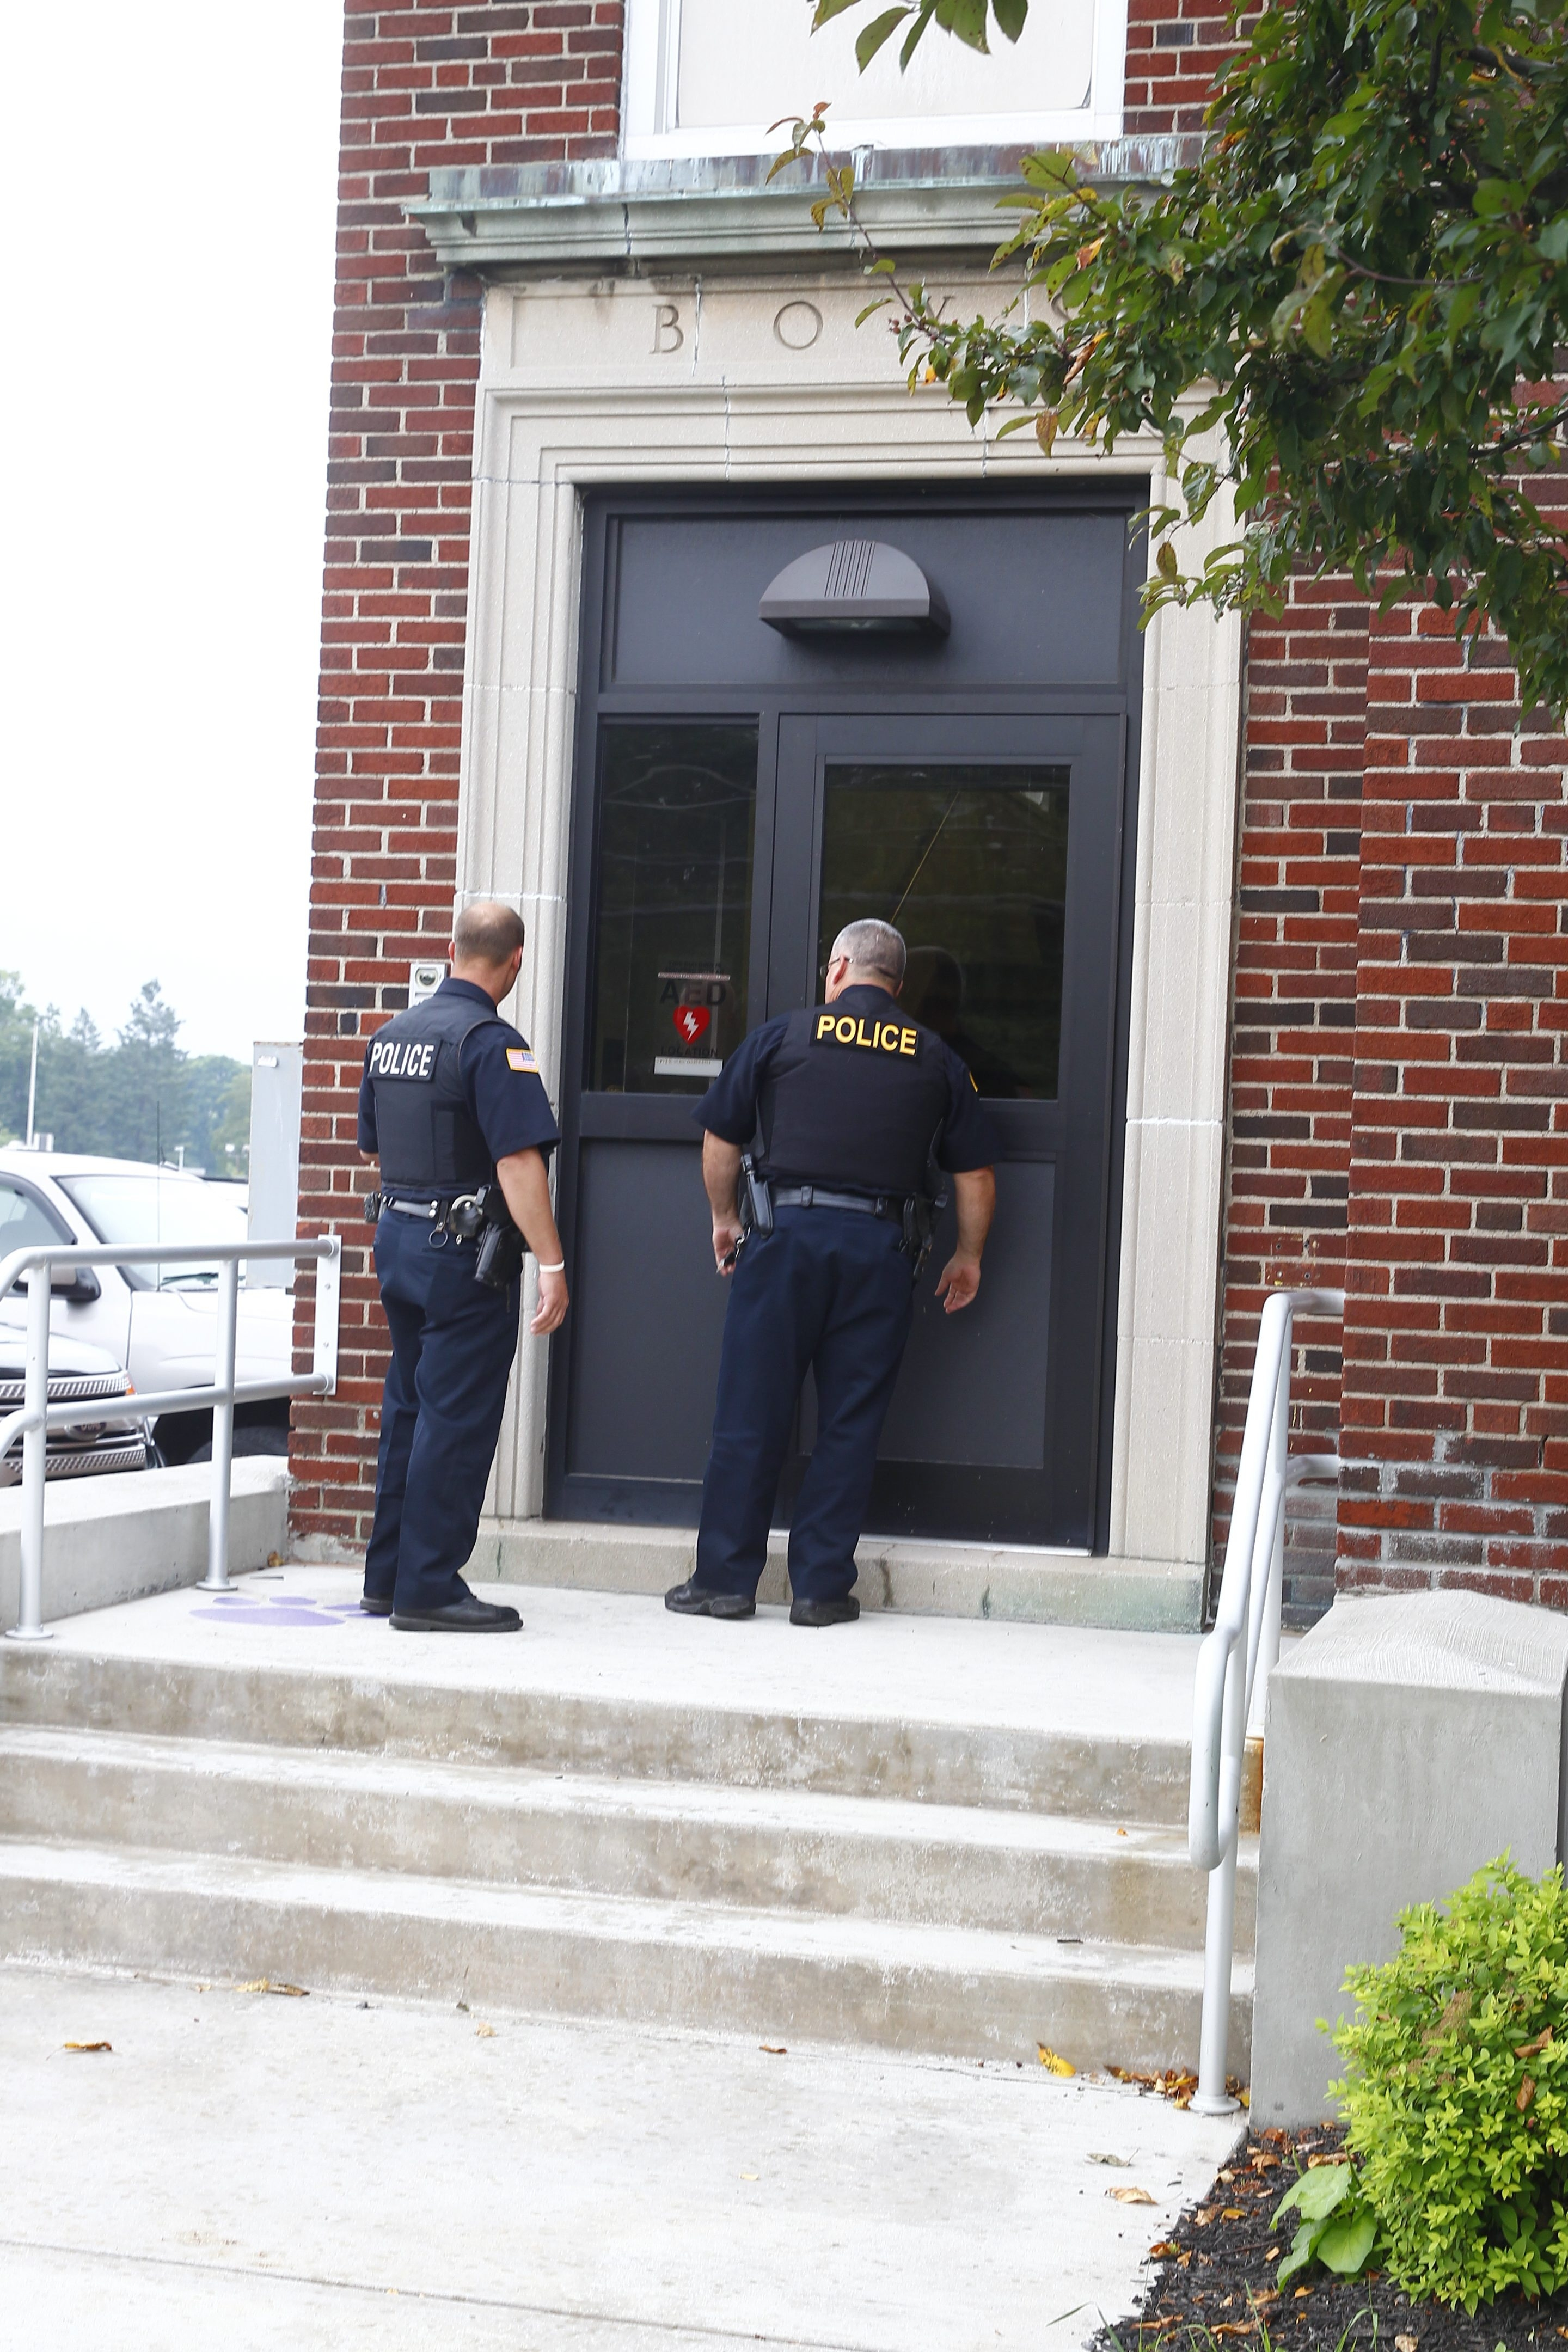 Town of Hamburg police respond to a call from a board member during Wednesday's special meeting of the school board. (John Hickey/Buffalo News)